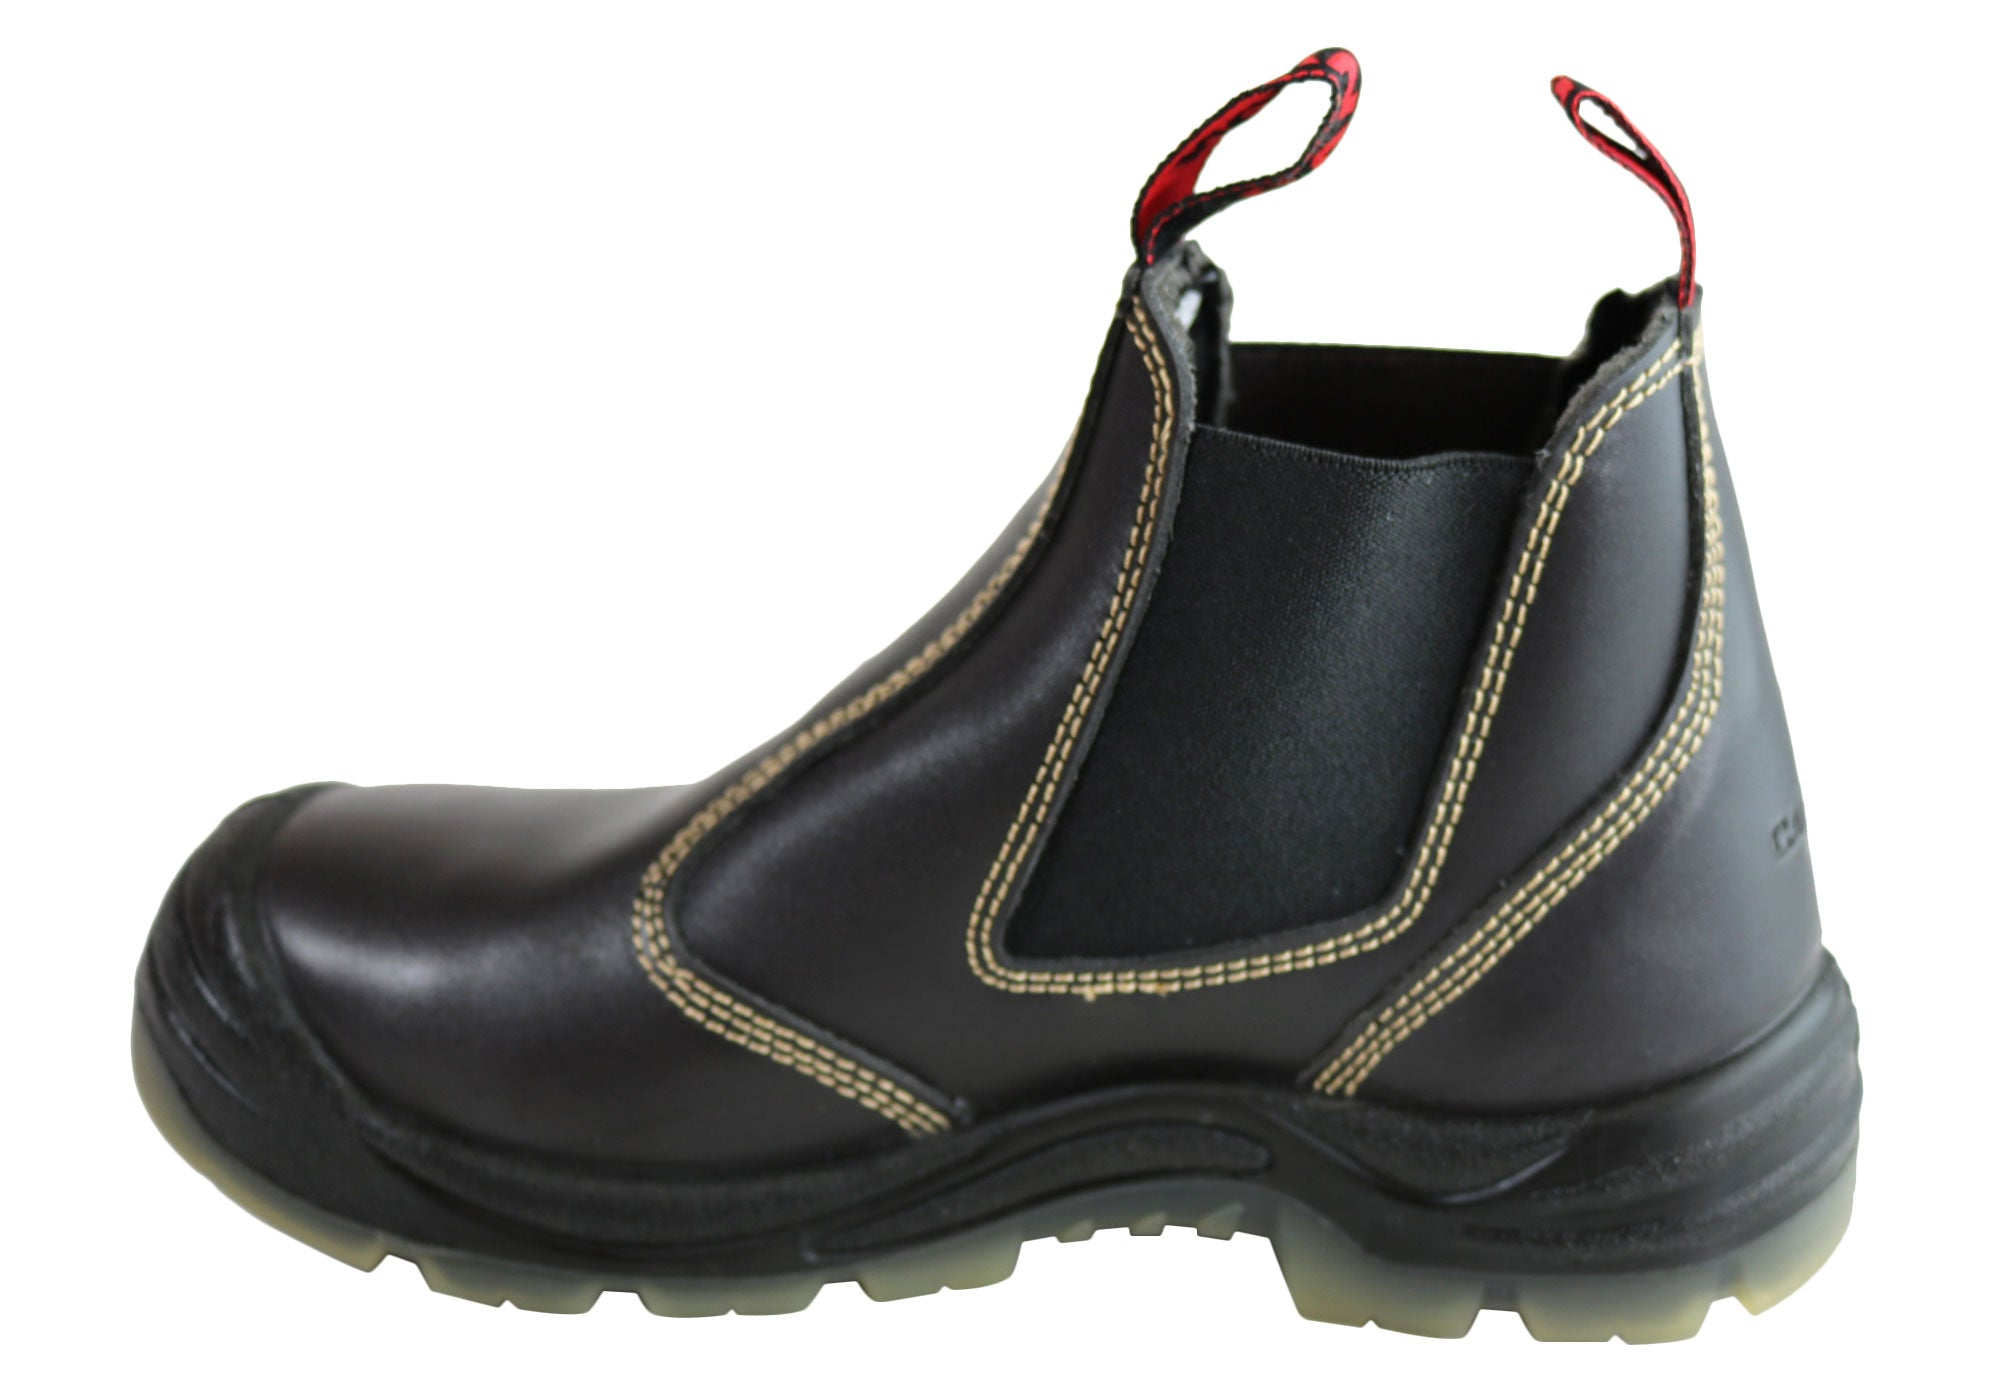 0ac134b3516 Details about Mens Canyon Tradesman Steel Toe Cap Elastic Sided Pull On  Work Boots - ModeShoes